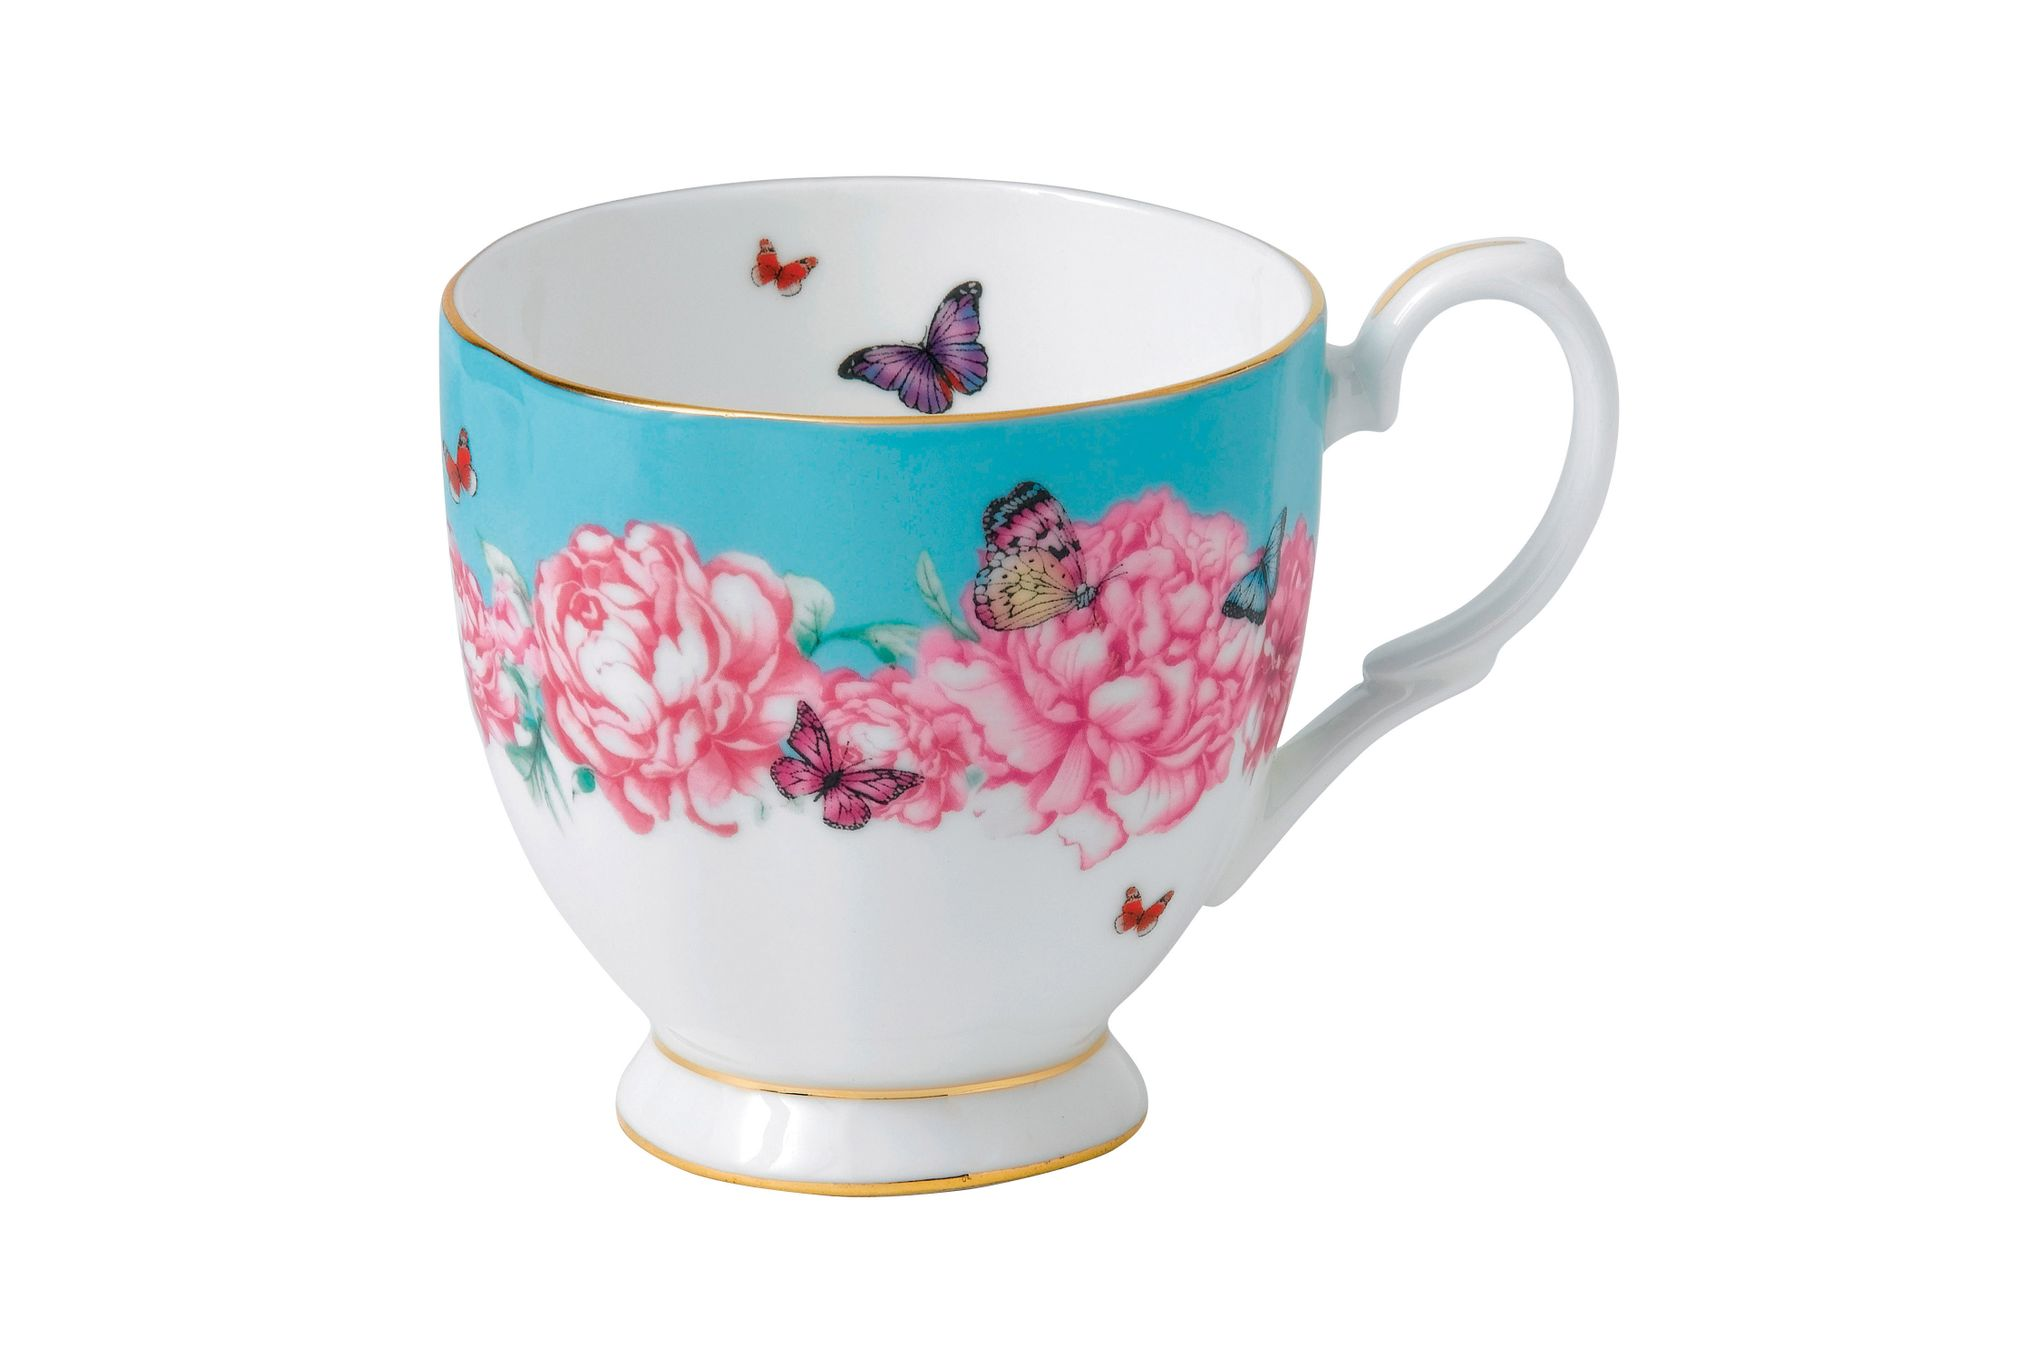 Miranda Kerr for Royal Albert Devotion Mug 0.3l thumb 1